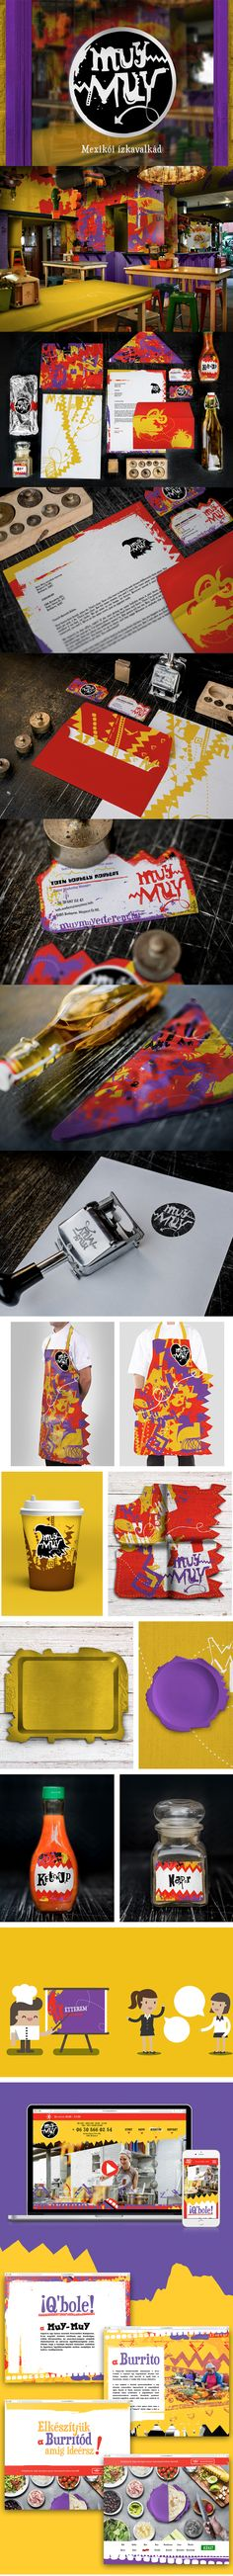 Restaurant Branding, Brand Packaging, Brand Identity, Artsy, Mexican, Behance, Colorful, Drawing, Interior Design